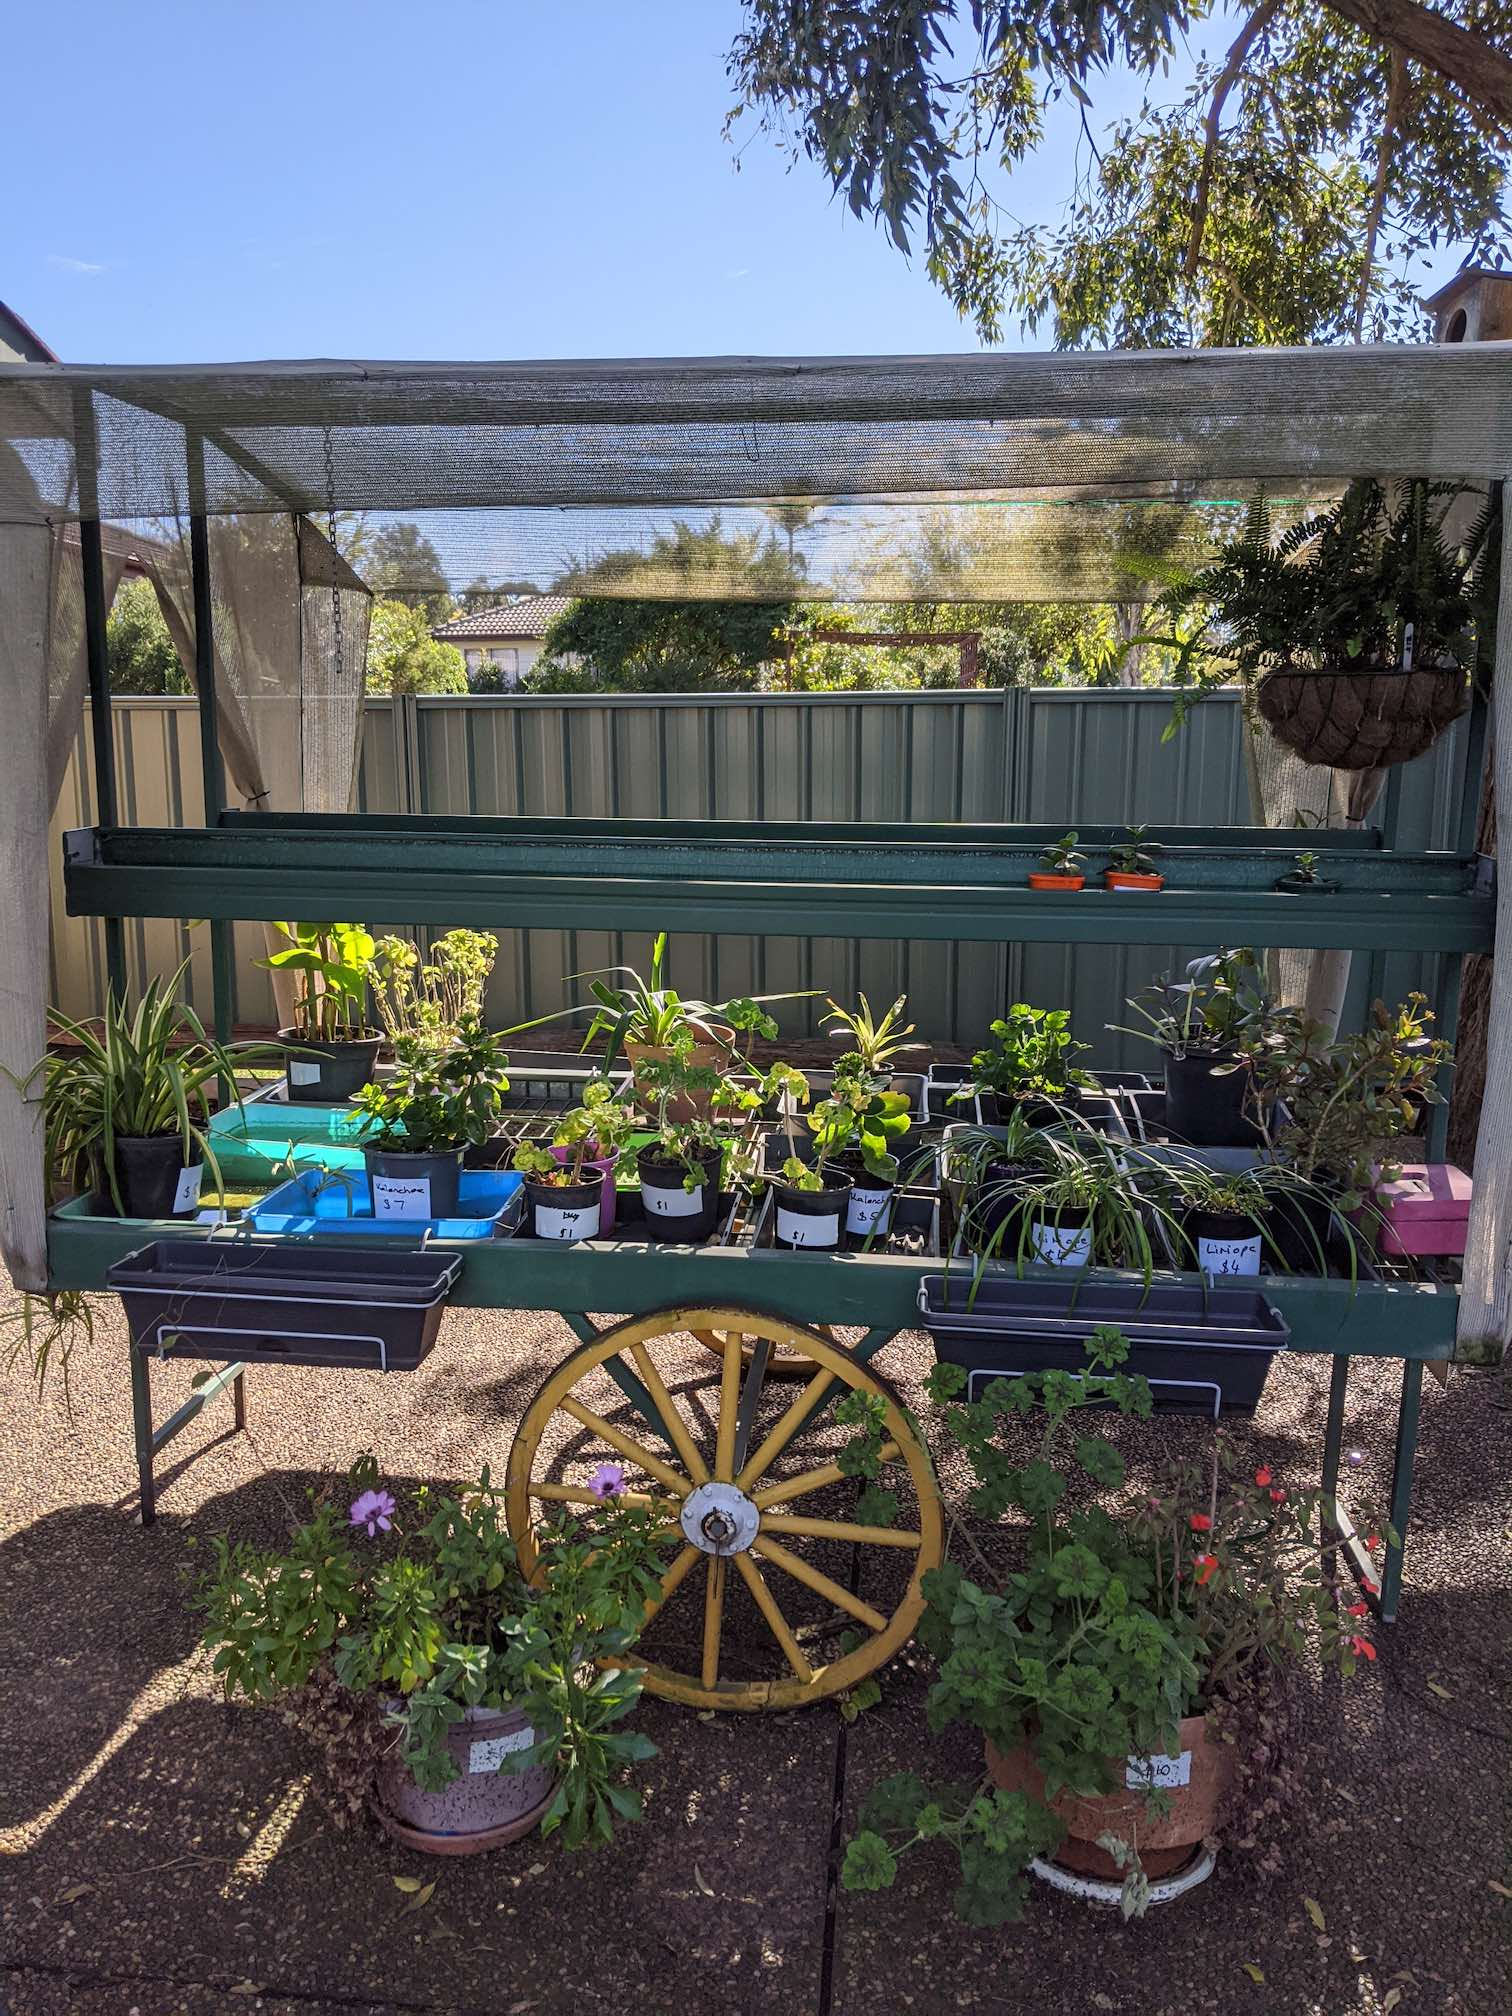 A front yard wagon full of plants for sale, individually priced.